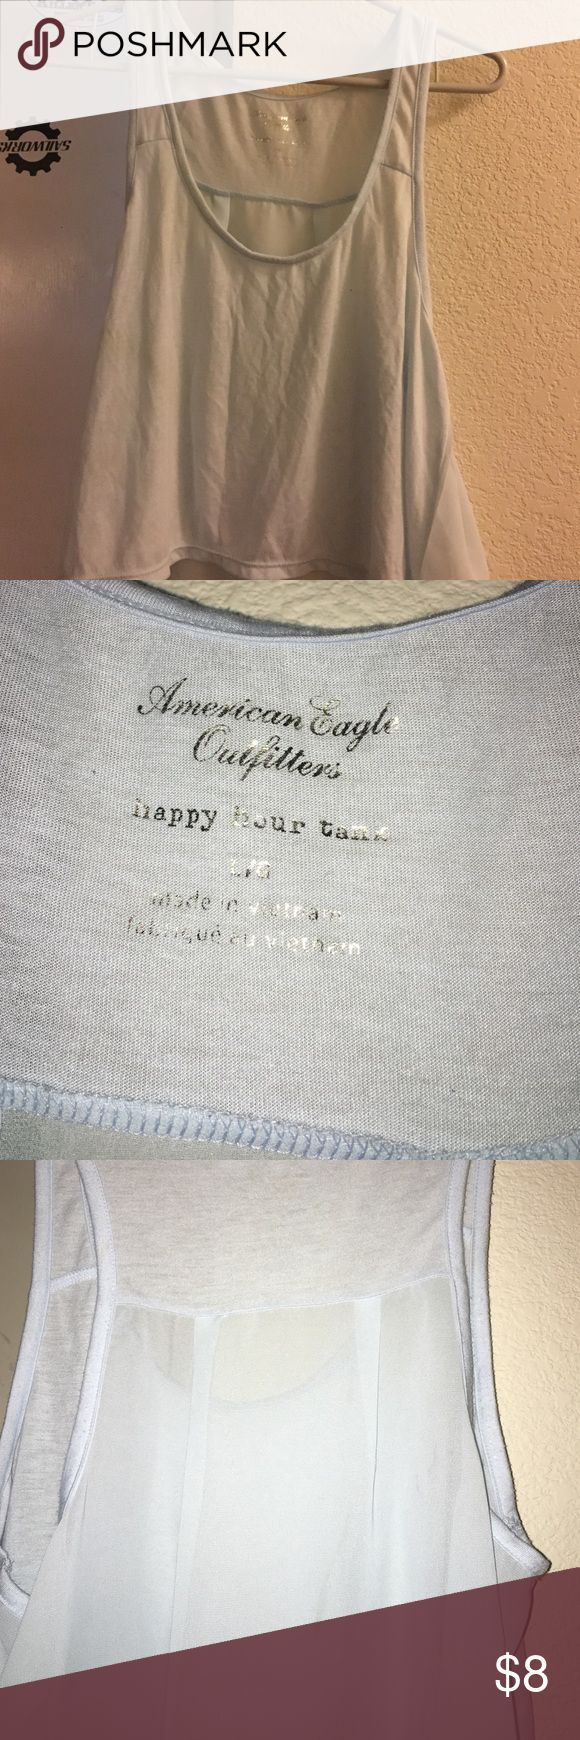 Baby blue sheer American eagle happy hour tank Worn once, no stains or holes, sheer back, a little higher in front than back American Eagle Outfitters Tops Tank Tops